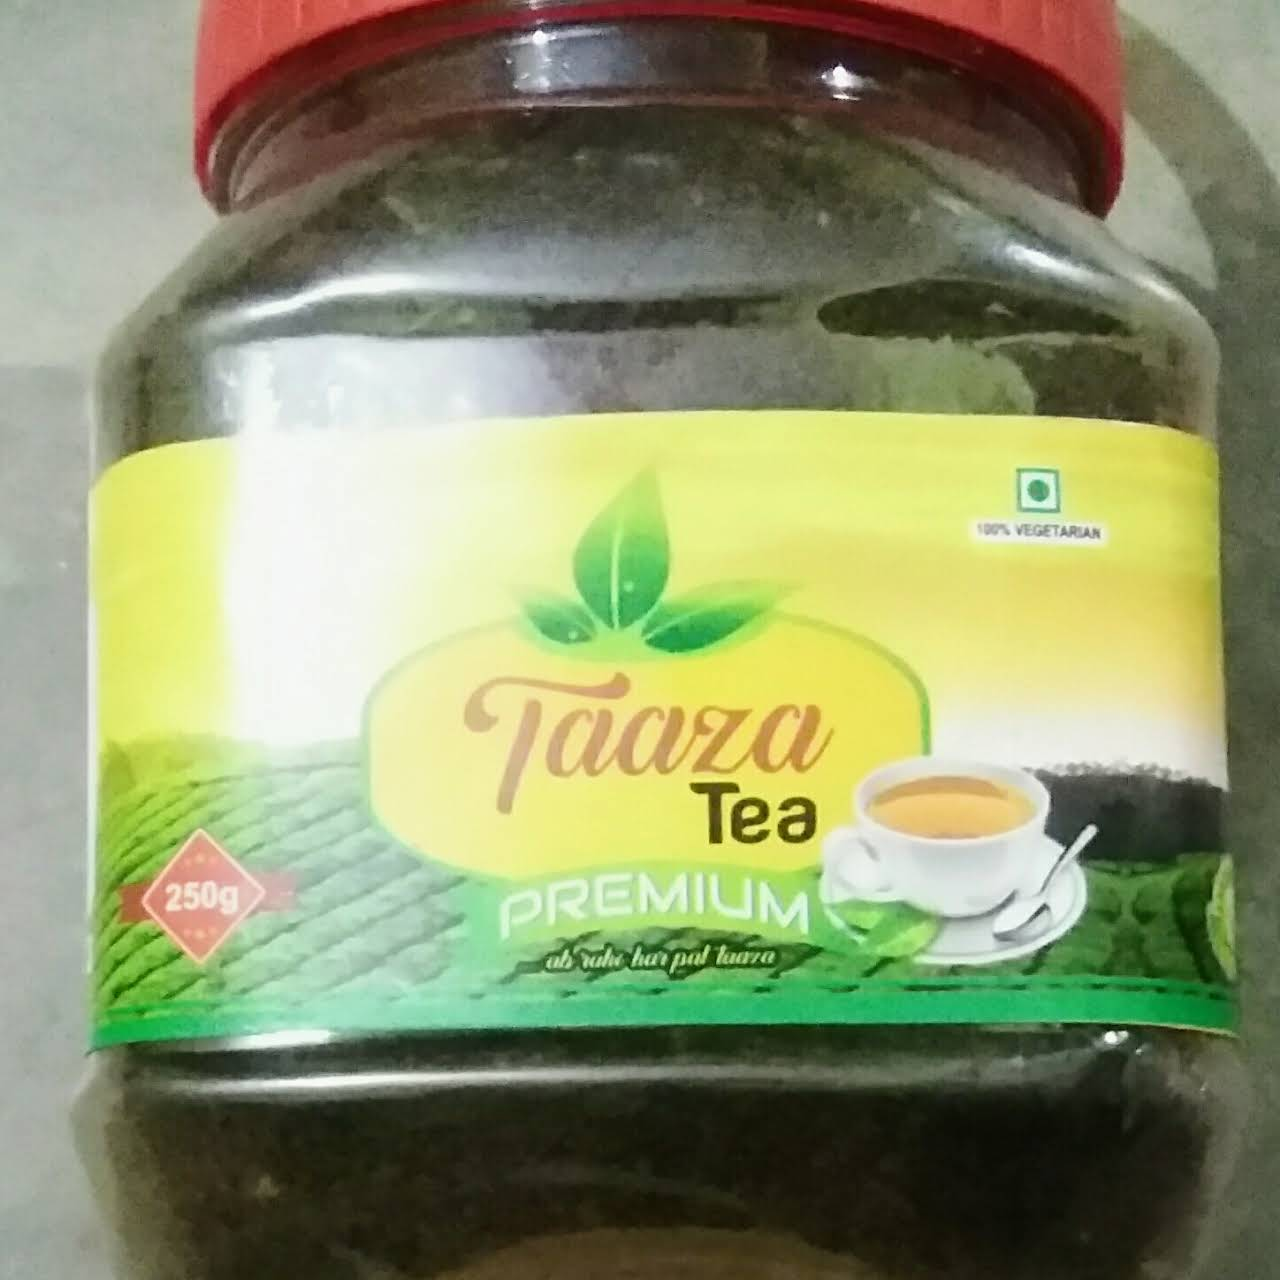 TAAZA TEA - The best quality tea suppliers